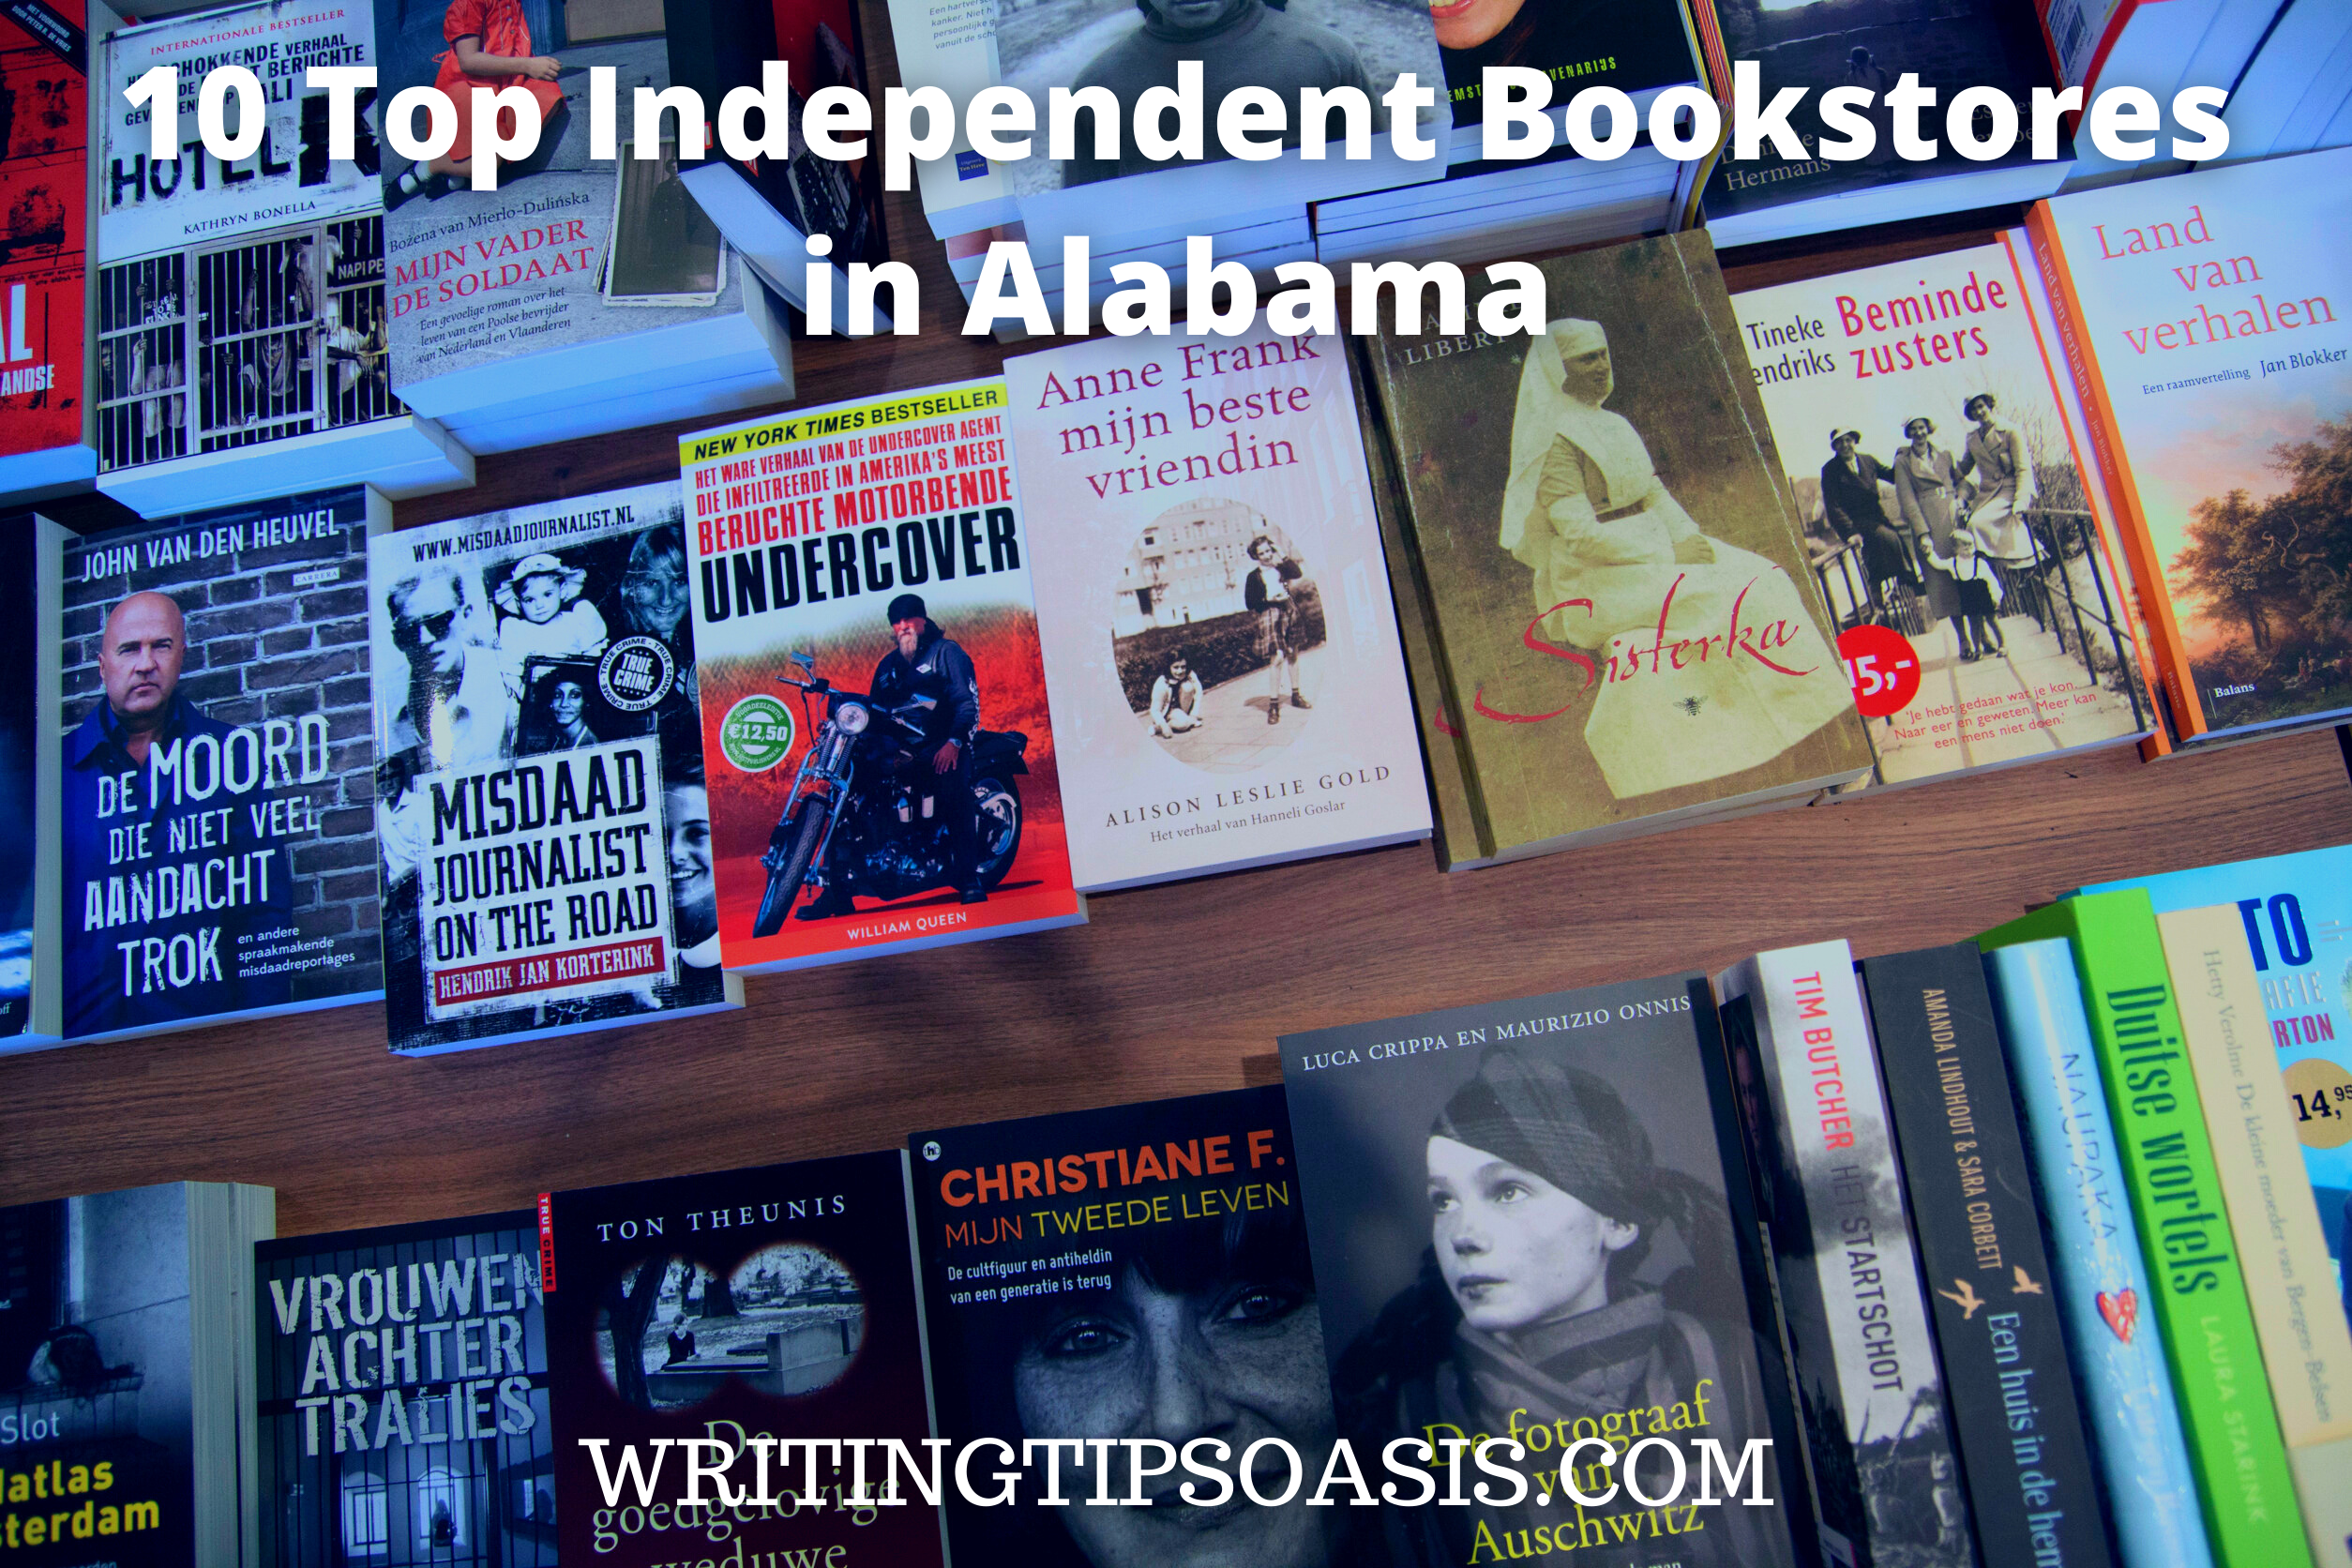 independent bookstores in Alabama